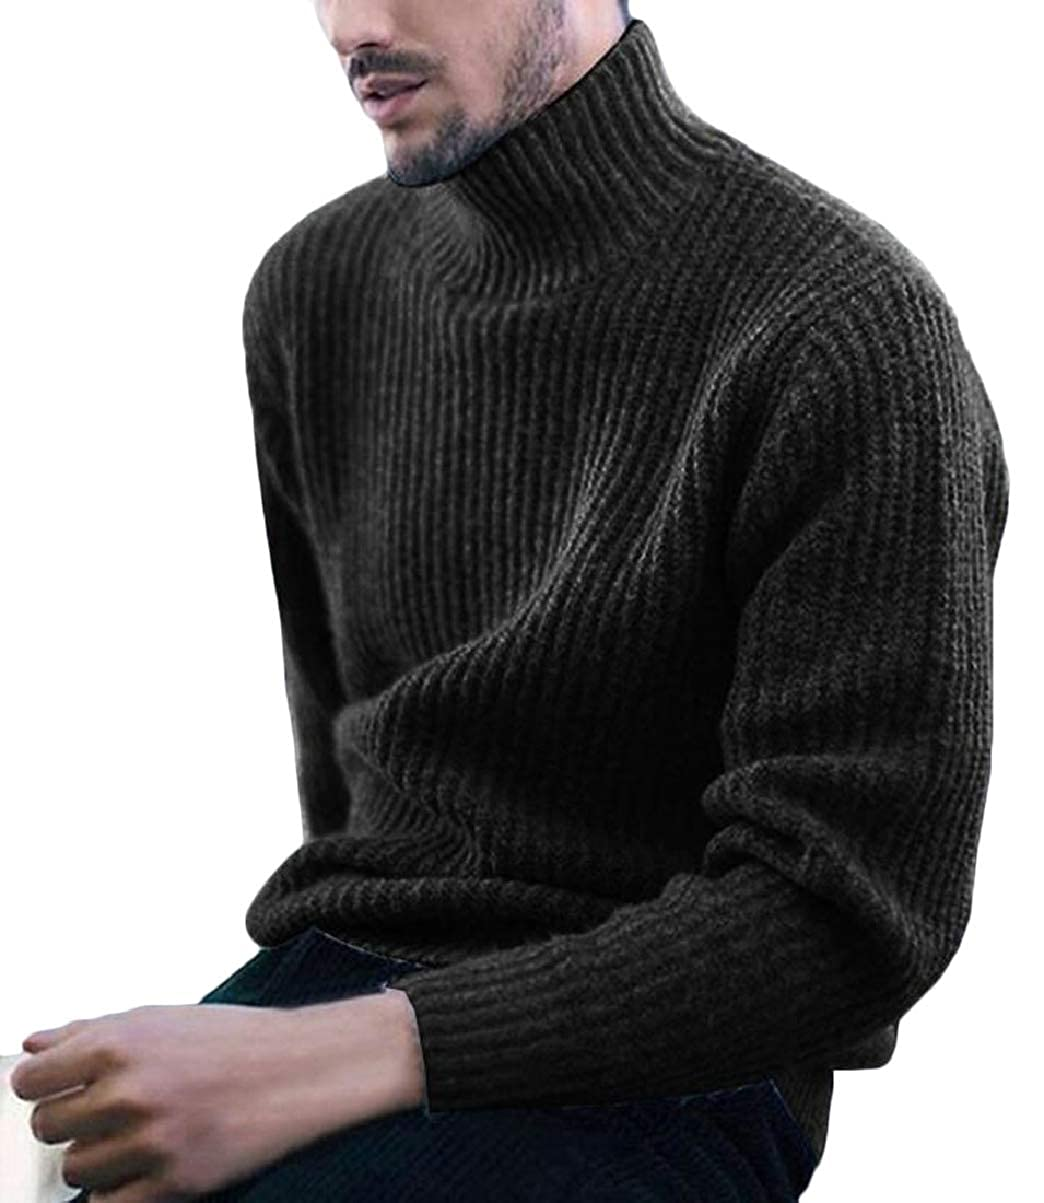 CBTLVSN Mens Autumn Long Sleeve Solid High Neck Thermal Knitted Sweaters